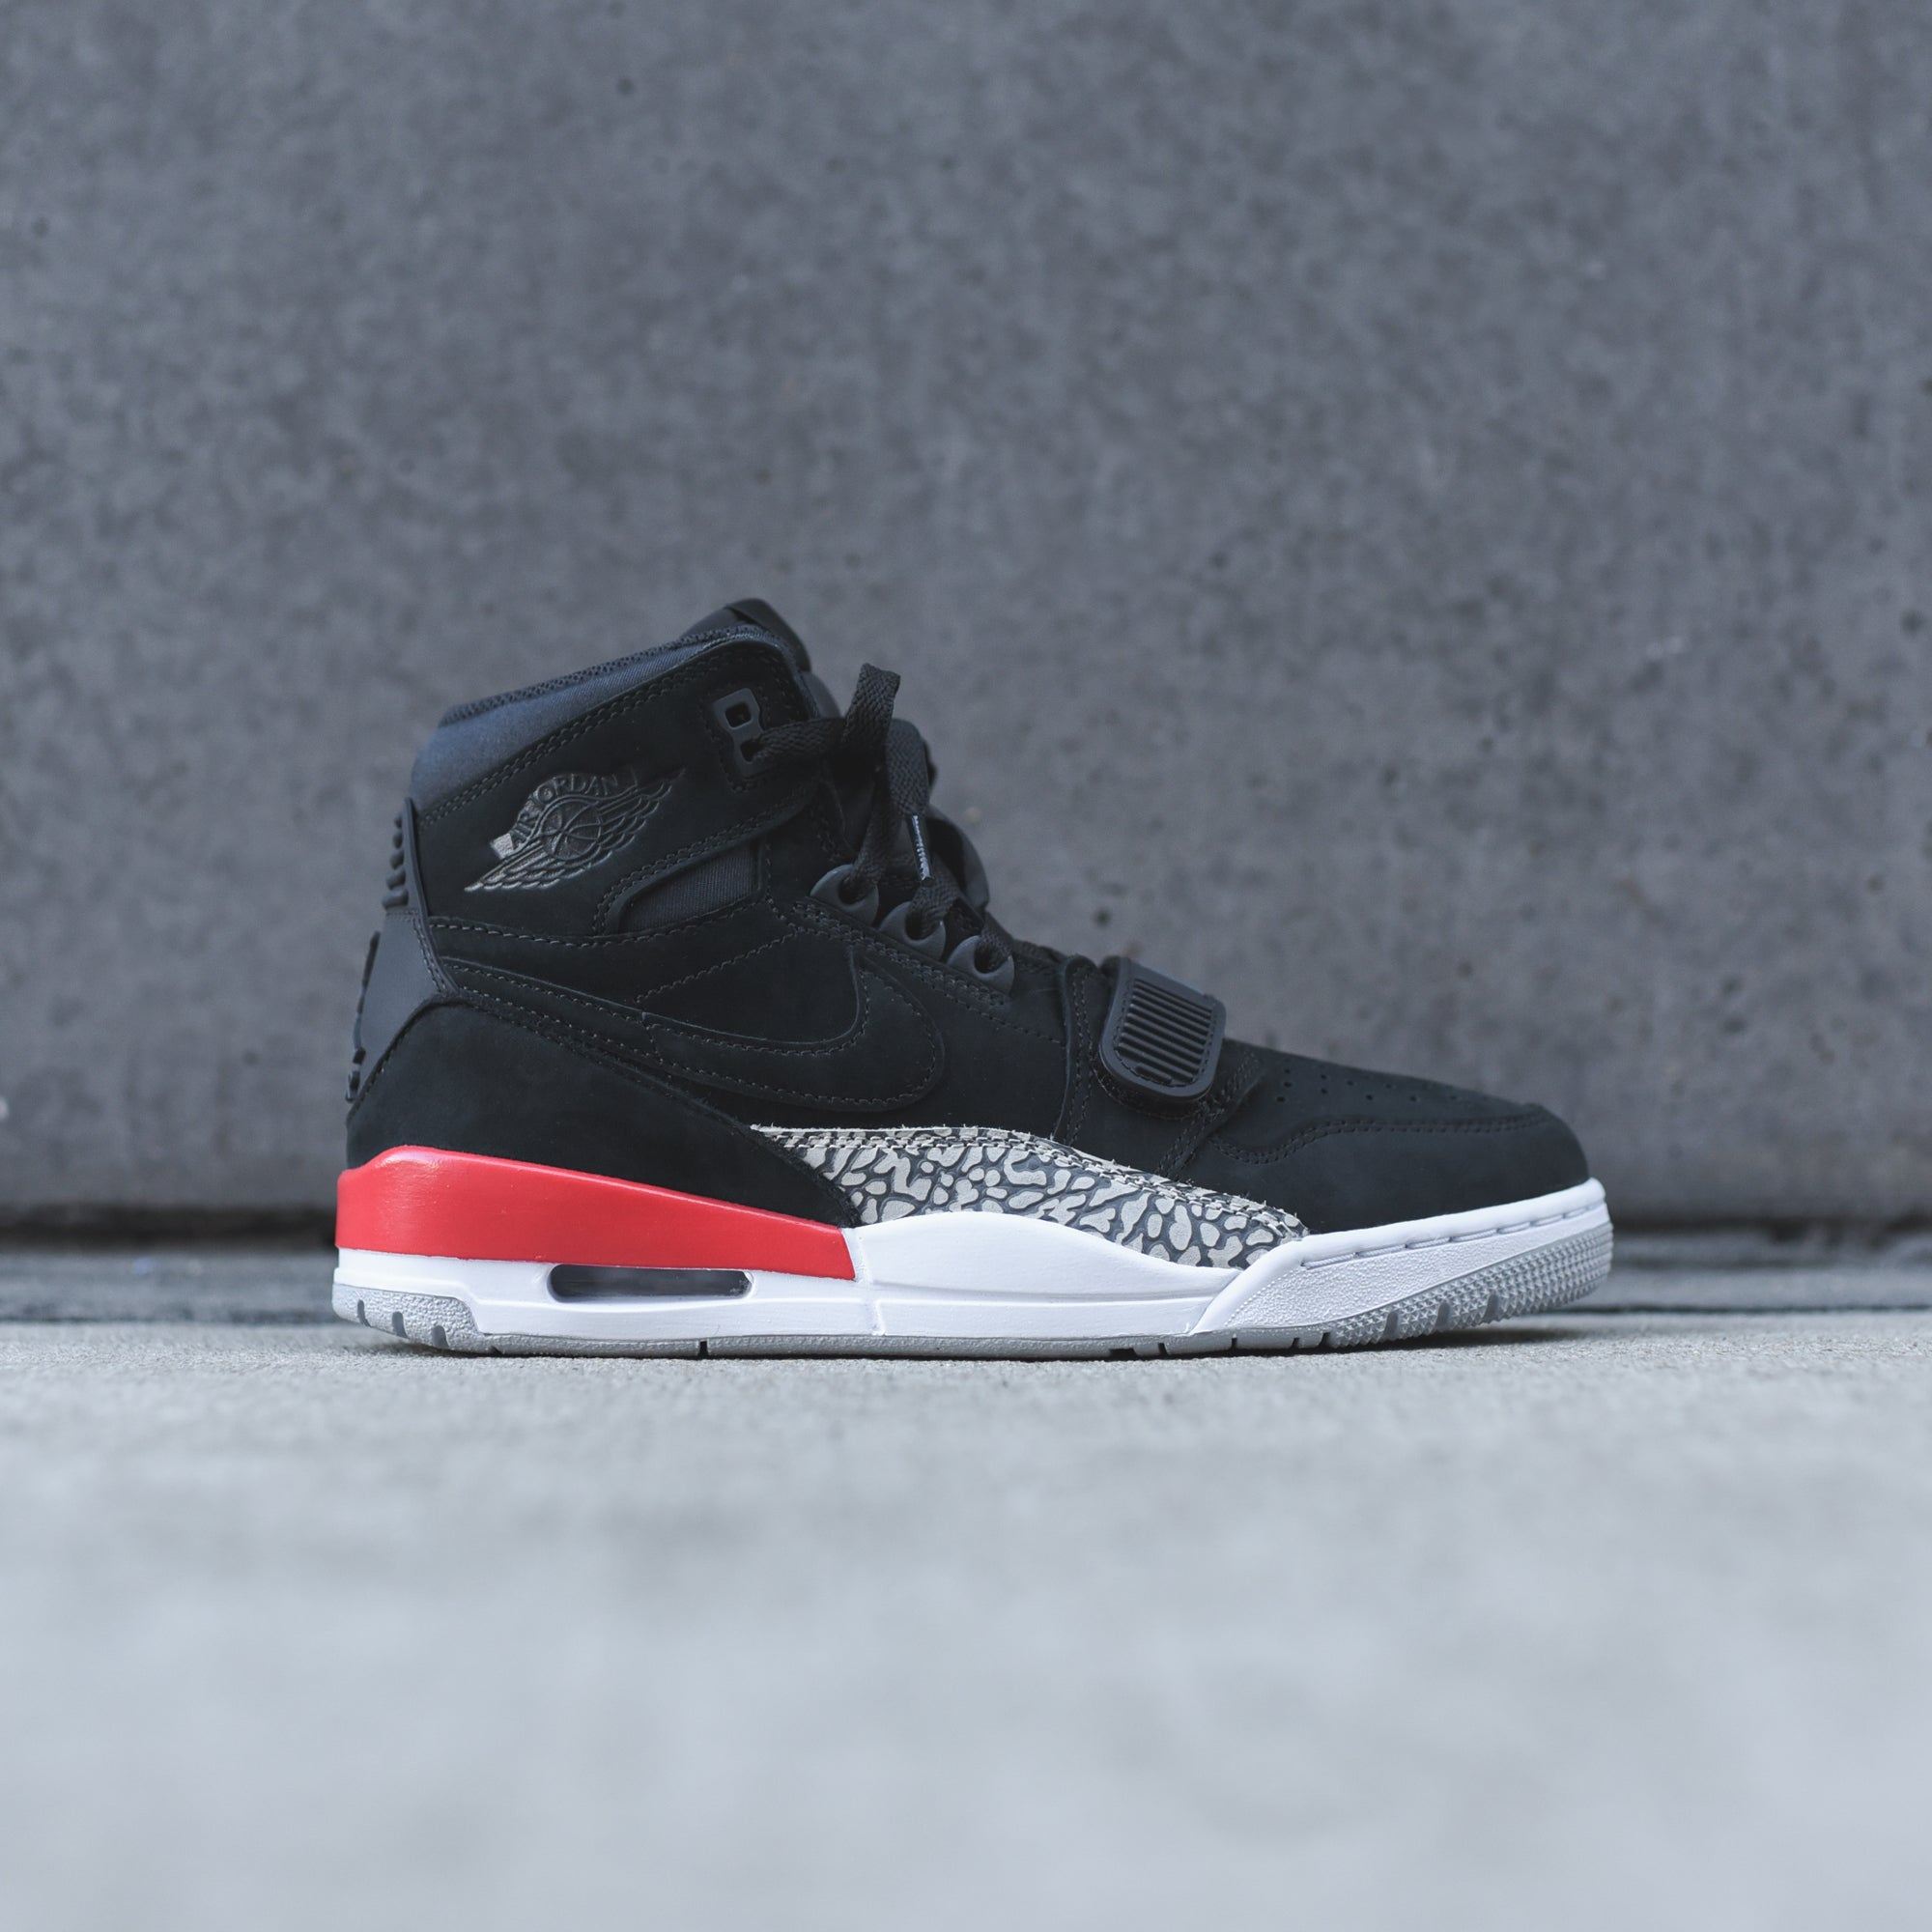 a685e303948 ... outlet for sale e89f7 d9163 Nike Air Jordan Legacy 312 - Black Fire Red  – Kith ...